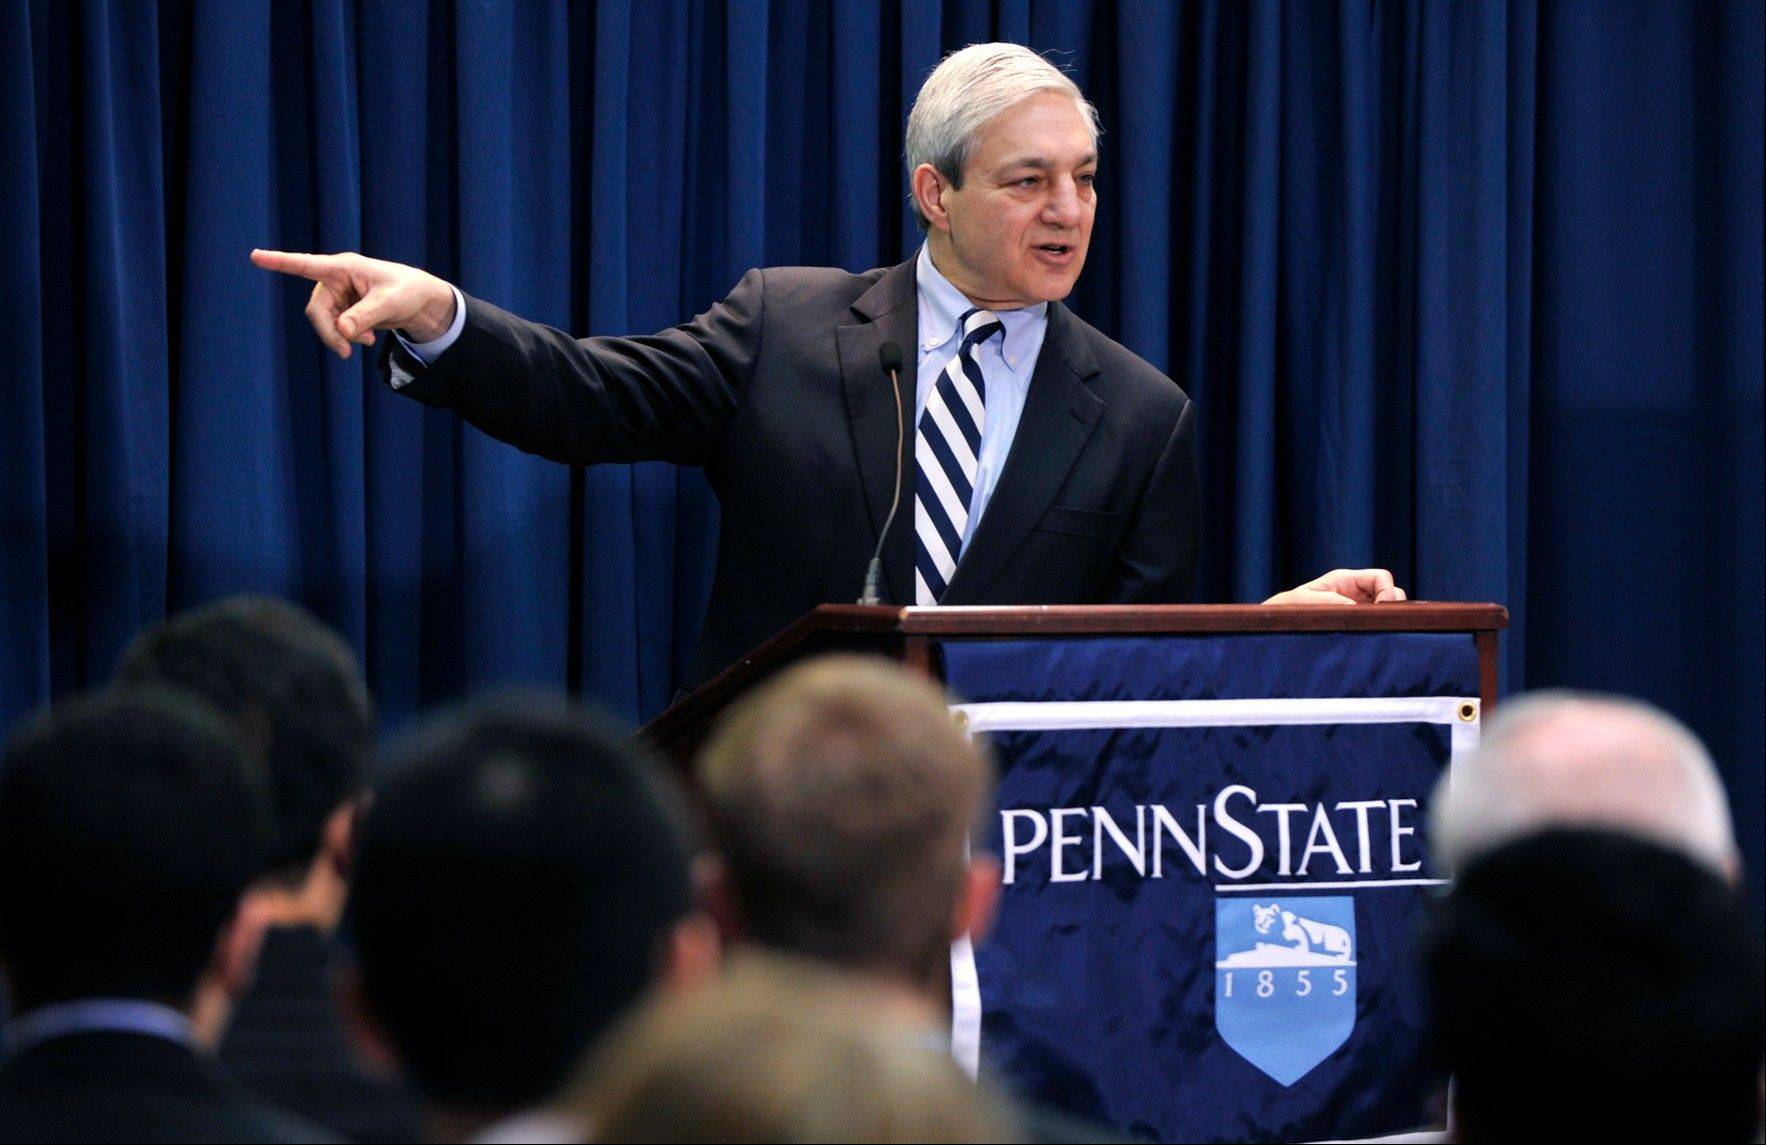 Penn State's disgraced former president Graham Spanier is trying to convince the public he had no idea that Jerry Sandusky was a child molester -- and that he most certainly did not protect one.